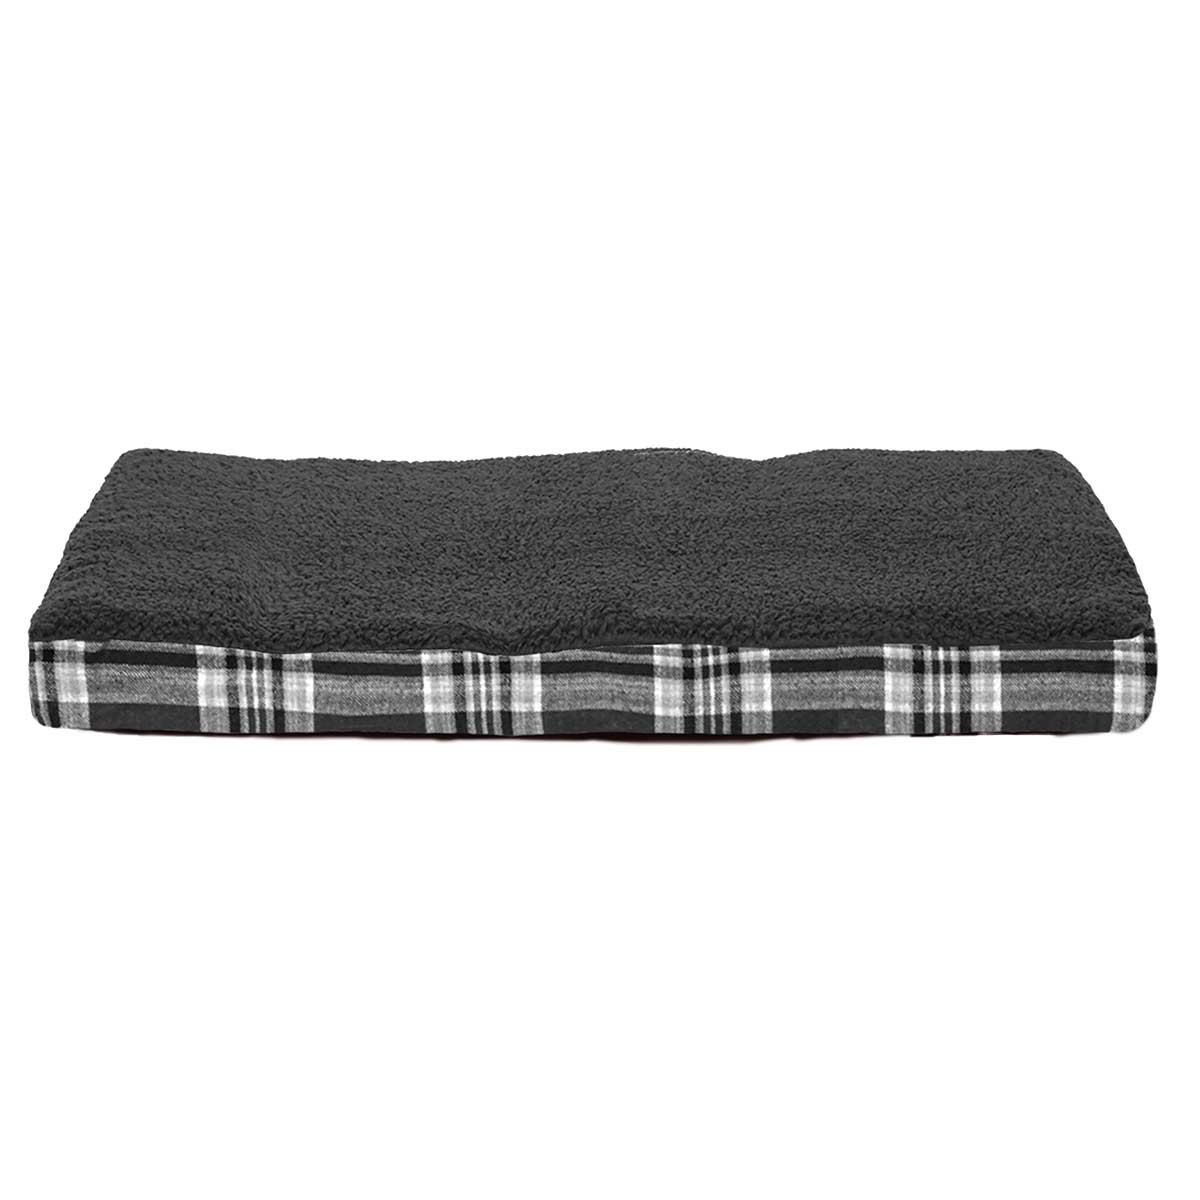 15 by 20 inches - FurHaven NAP Snuggle Terry Top Deluxe with Memory Foam Ortho Pet Bed - Gray Flannel Plaid